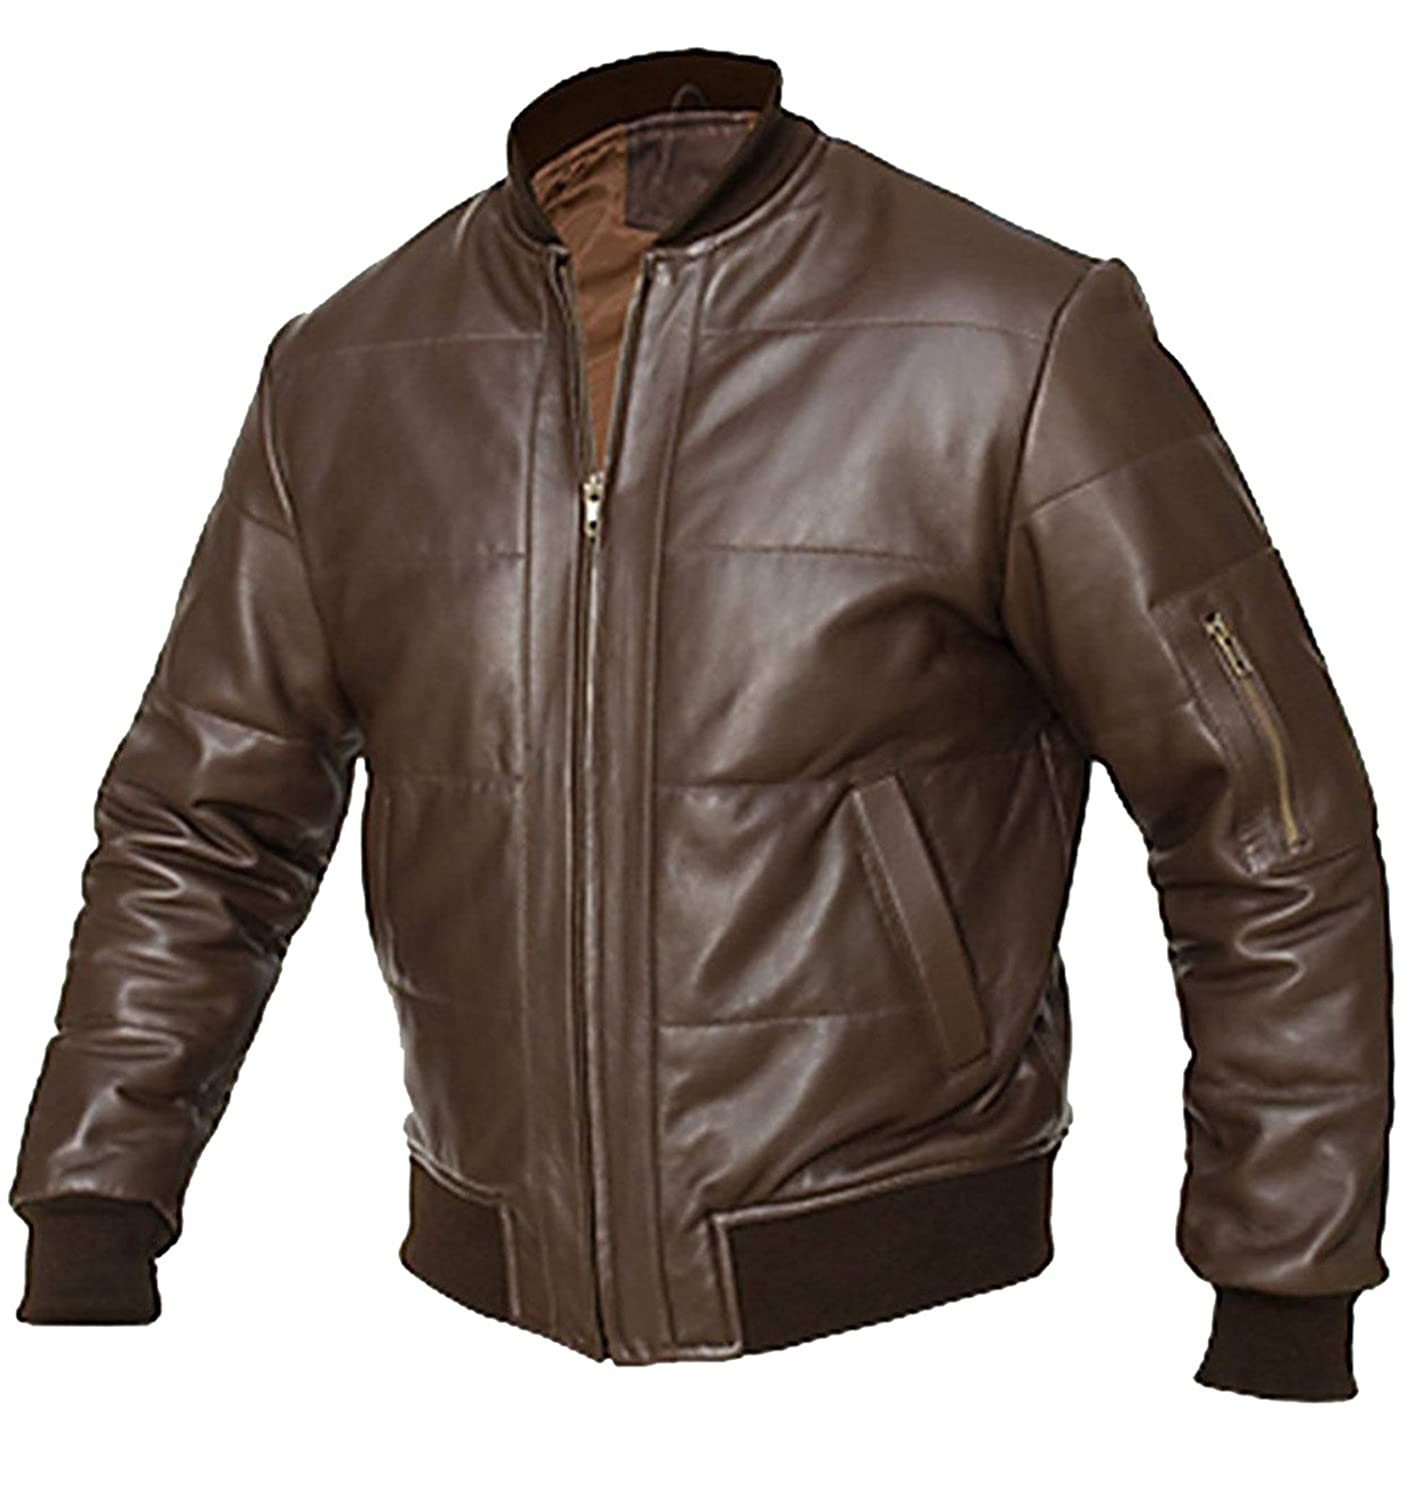 6587387e8 Liberty Brown Bomber Motorcycle Leather Jacket at Amazon Men's ...